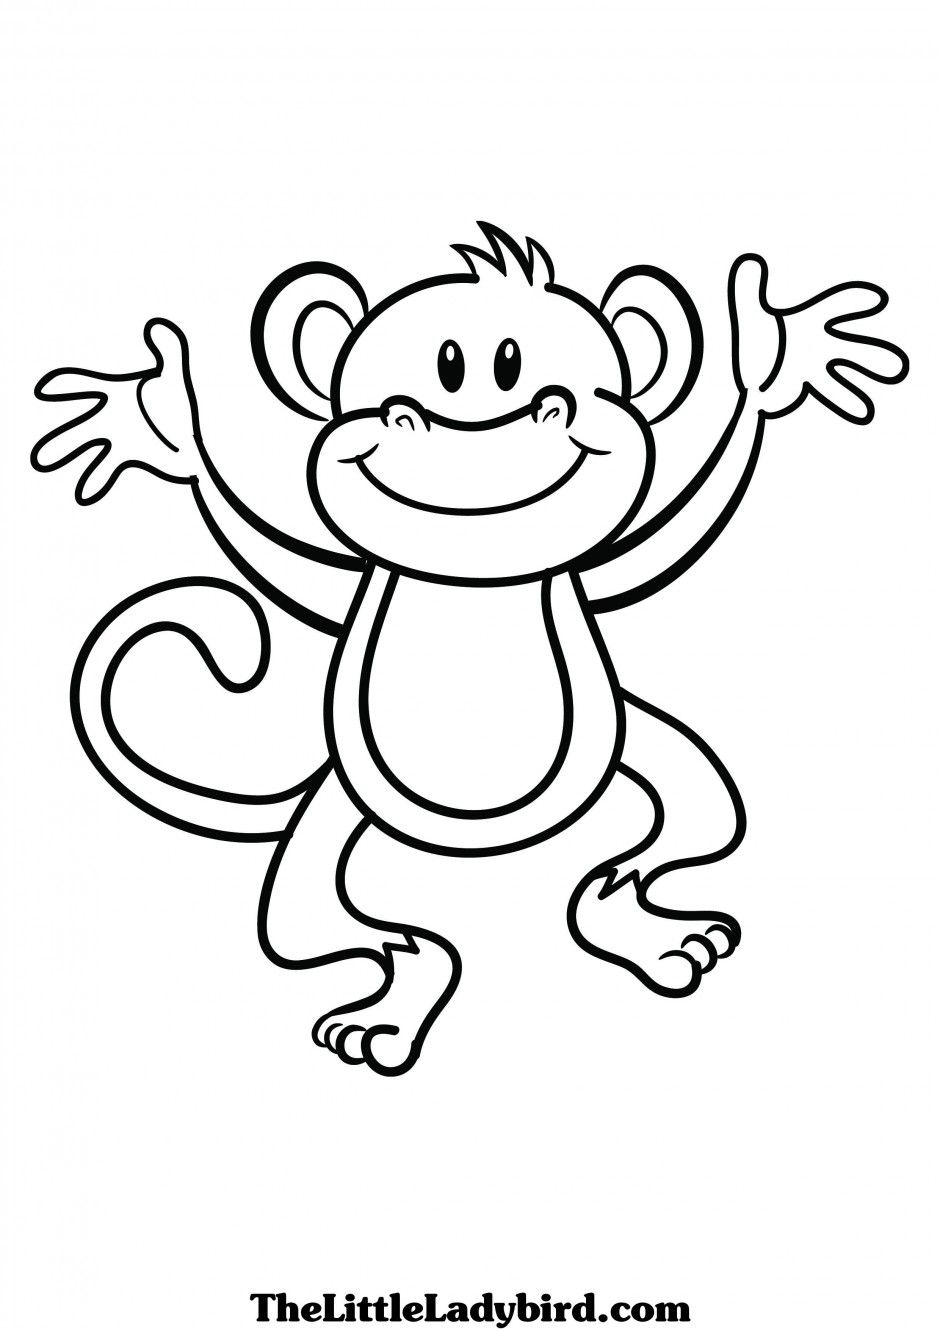 940x1329 Monkey Drawing Black And White For Free Download